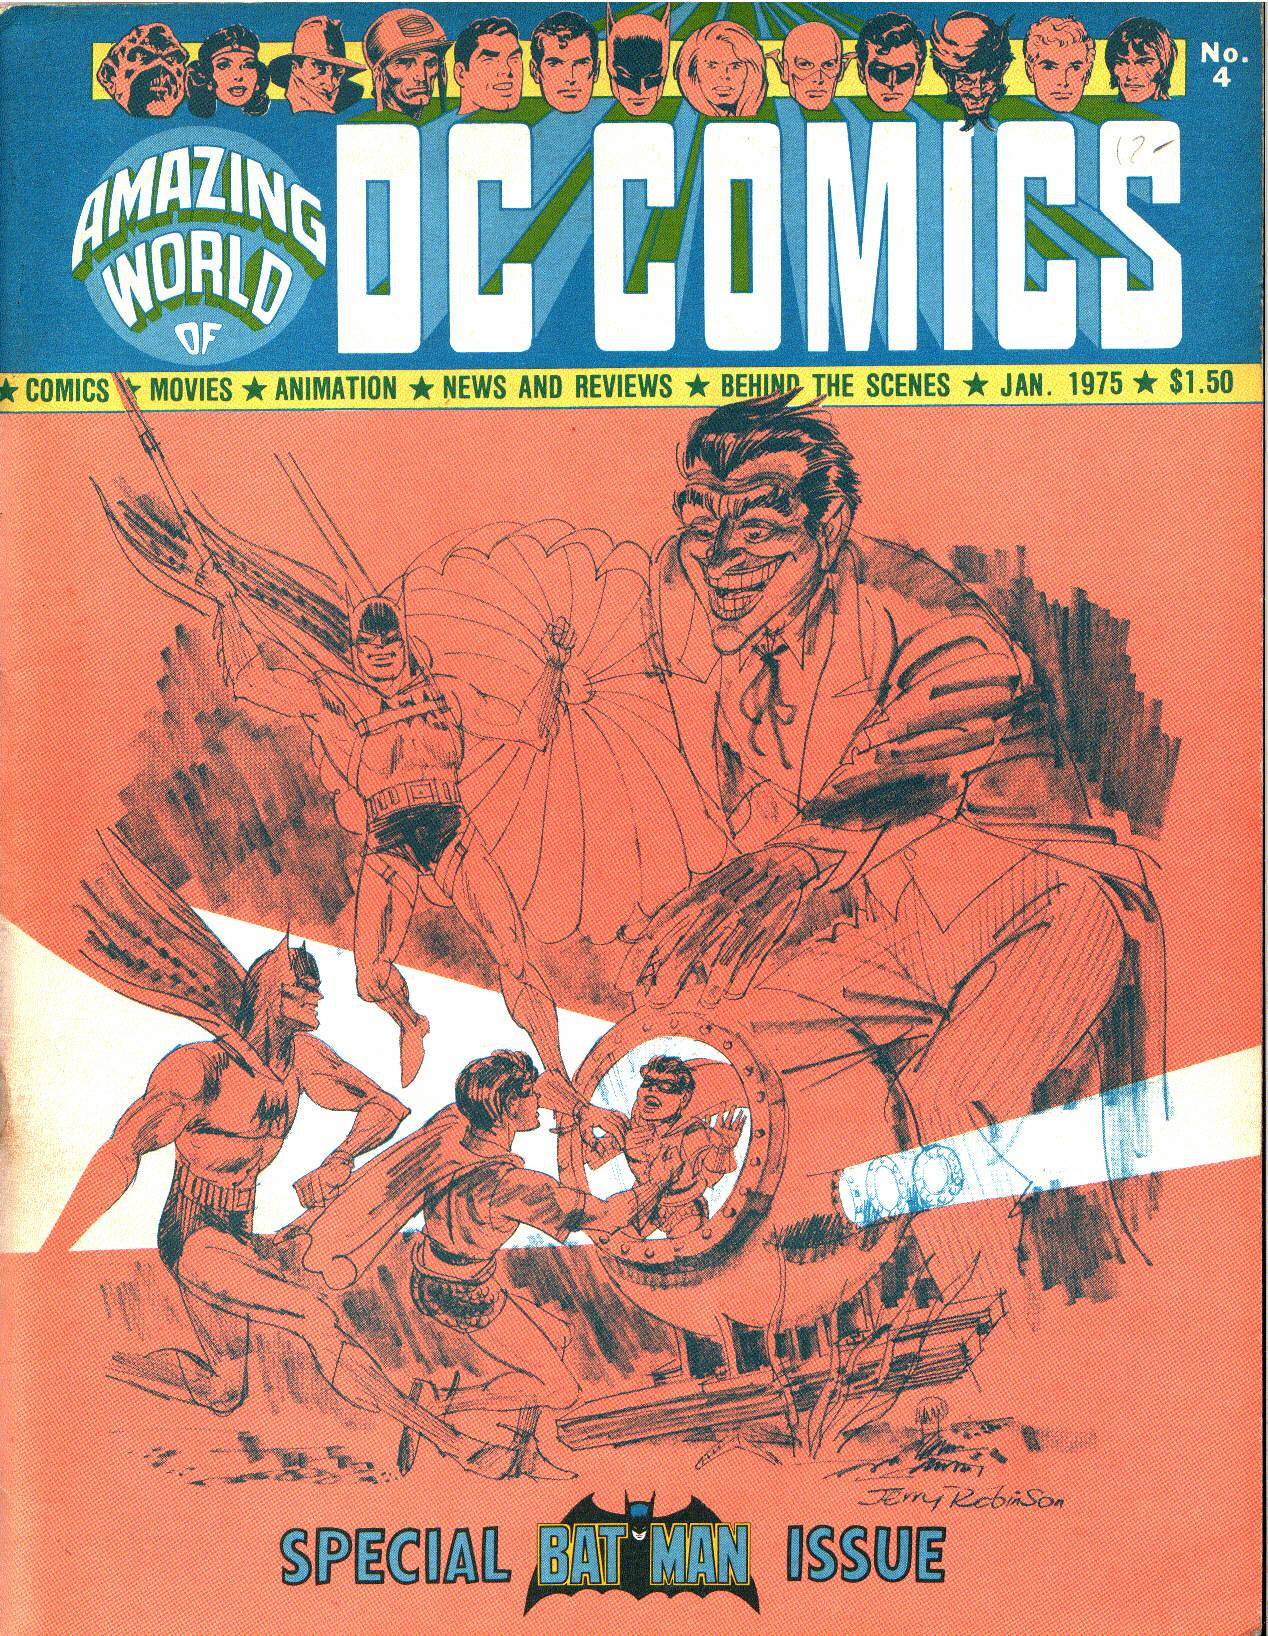 Read online Amazing World of DC Comics comic -  Issue #4 - 1